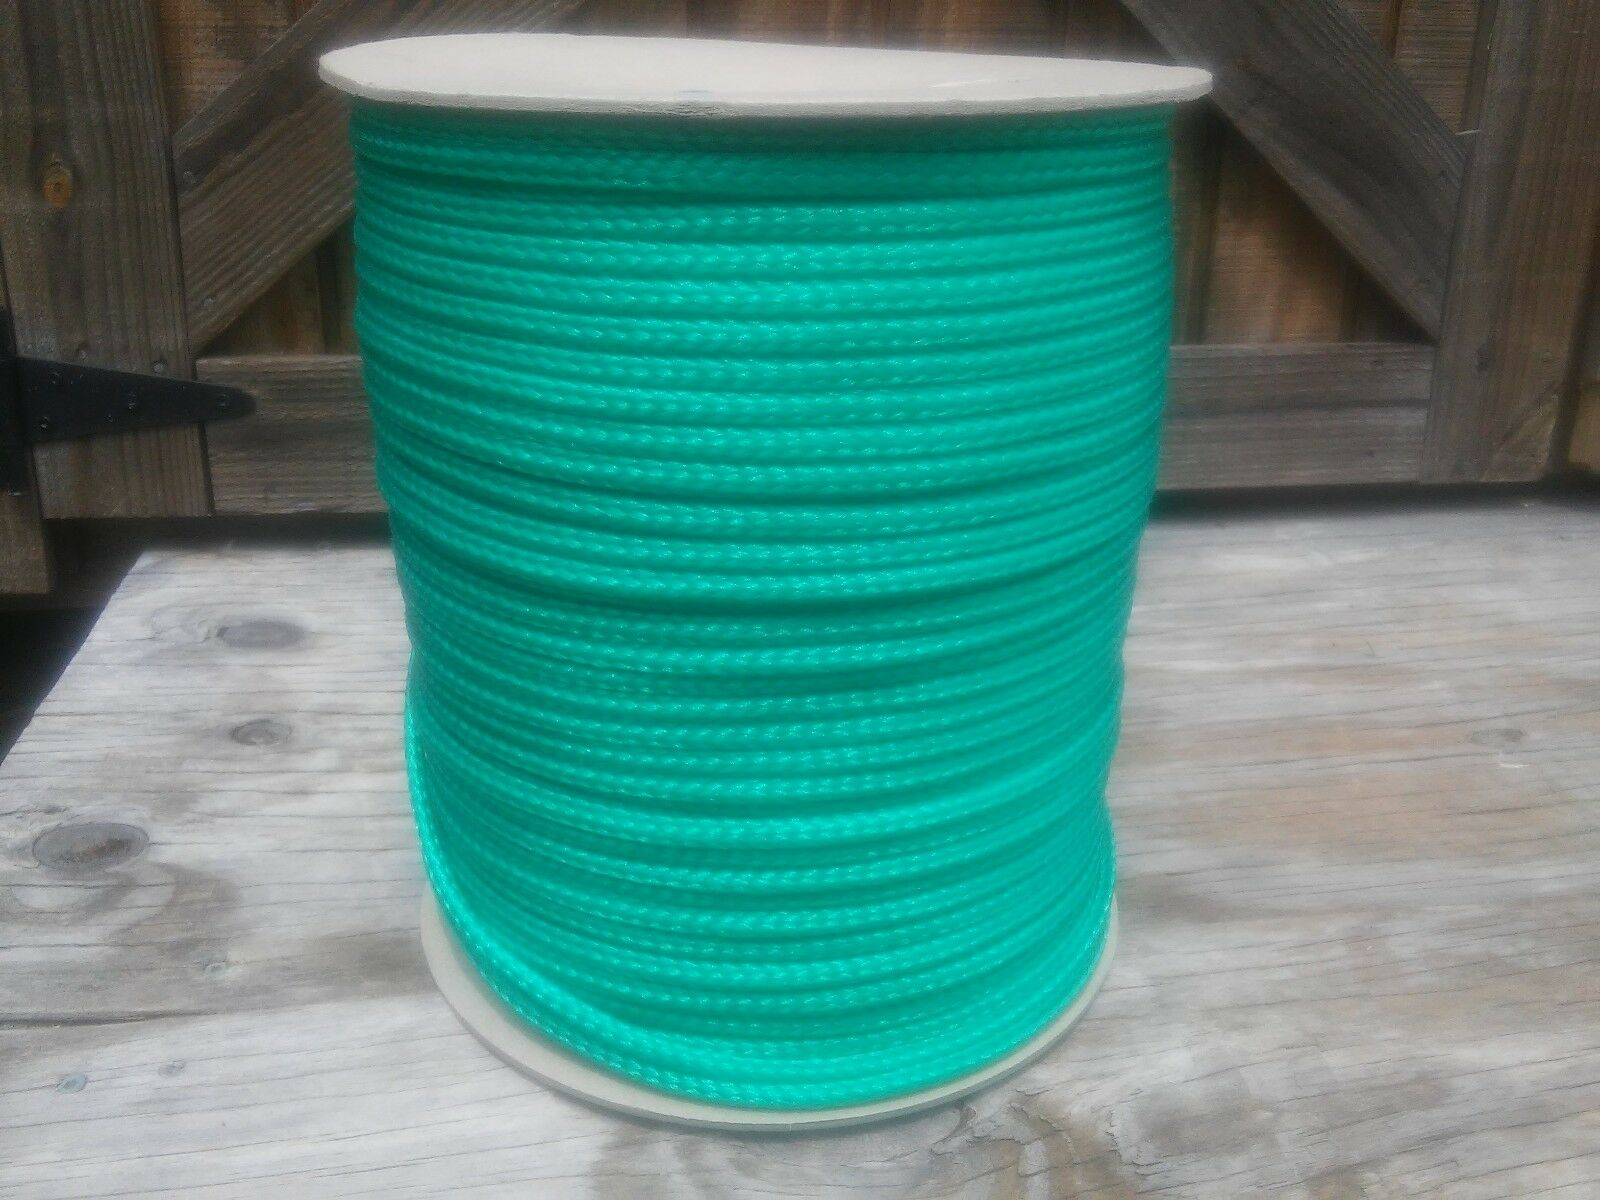 5 16  x 900 ft. spool of Hollow Braid Polypropylene Rope. Bright Green